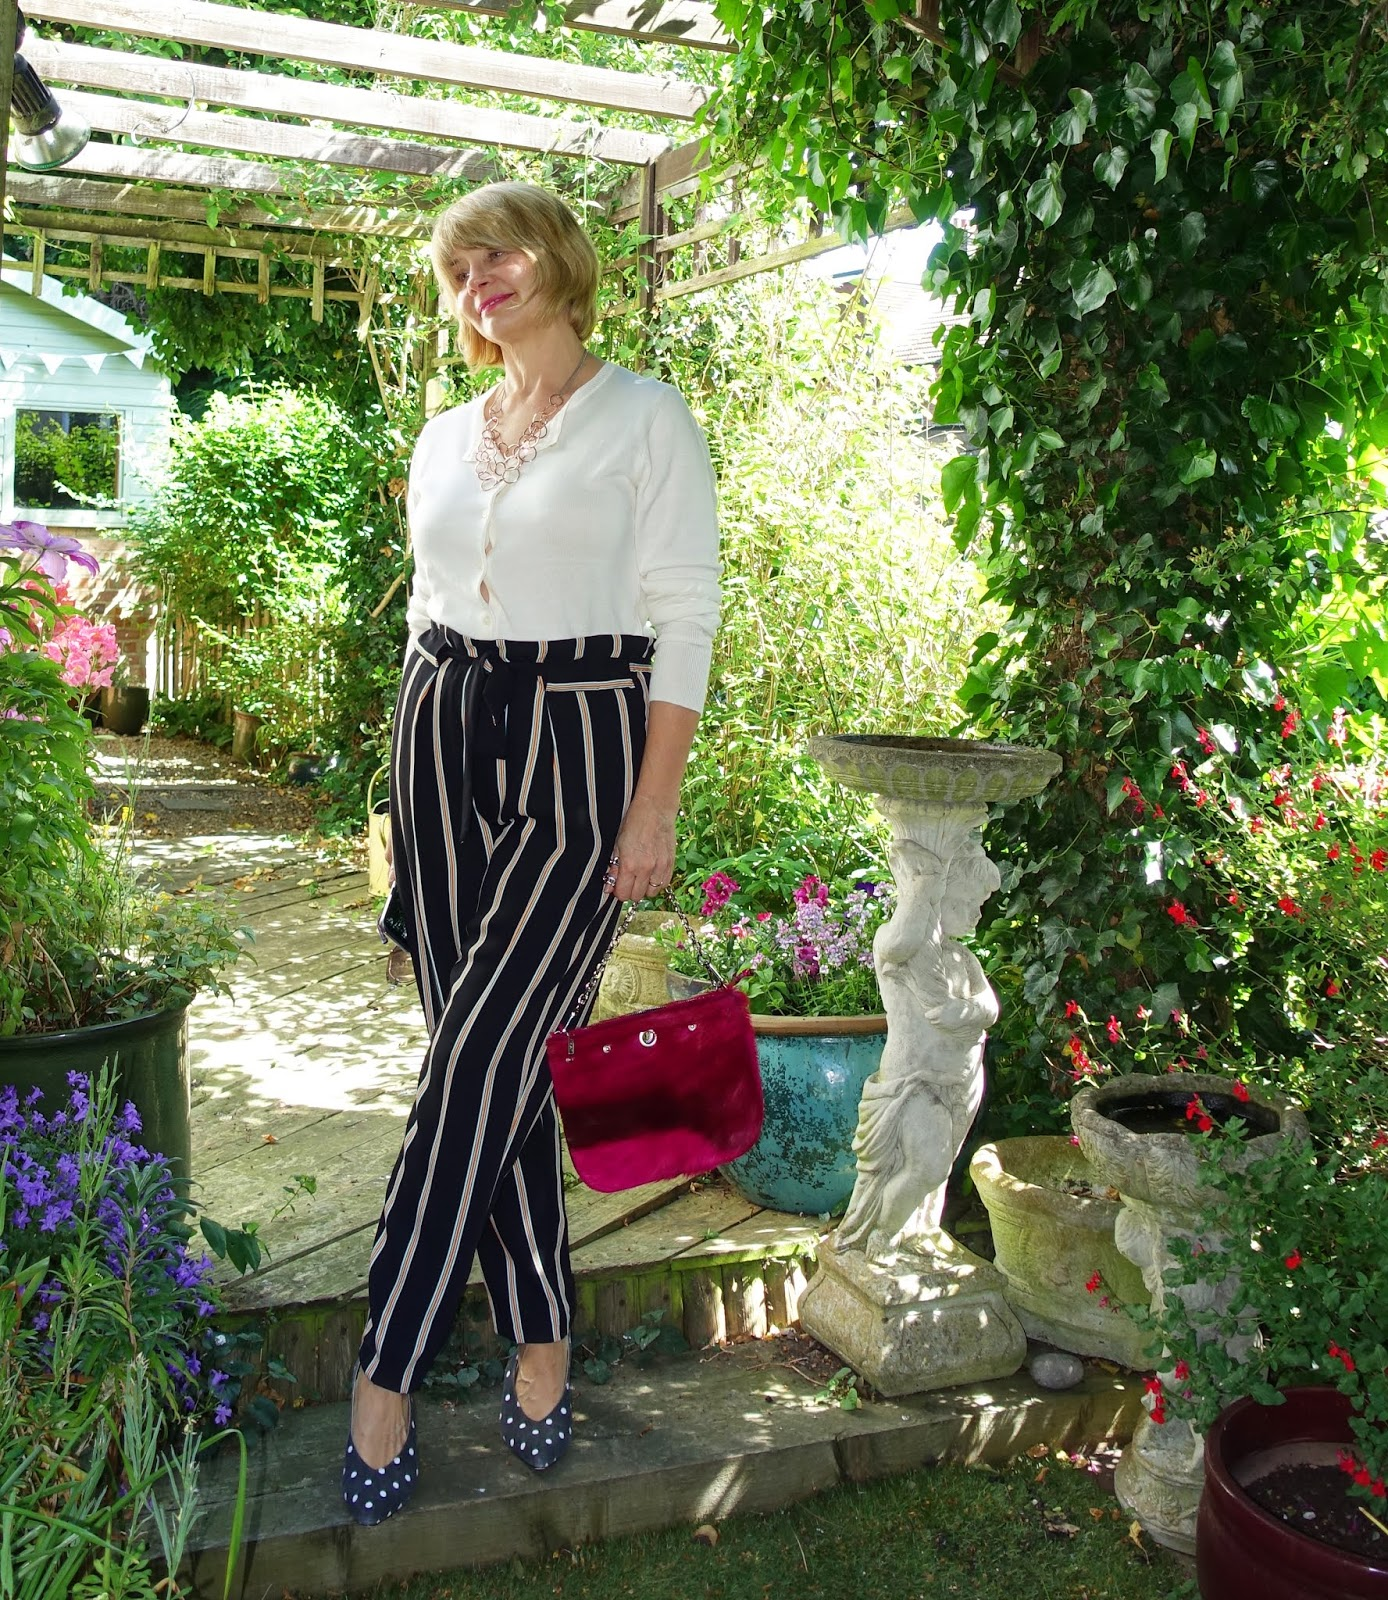 Garden shot of woman in striped paper bag trousers and cream cardigan